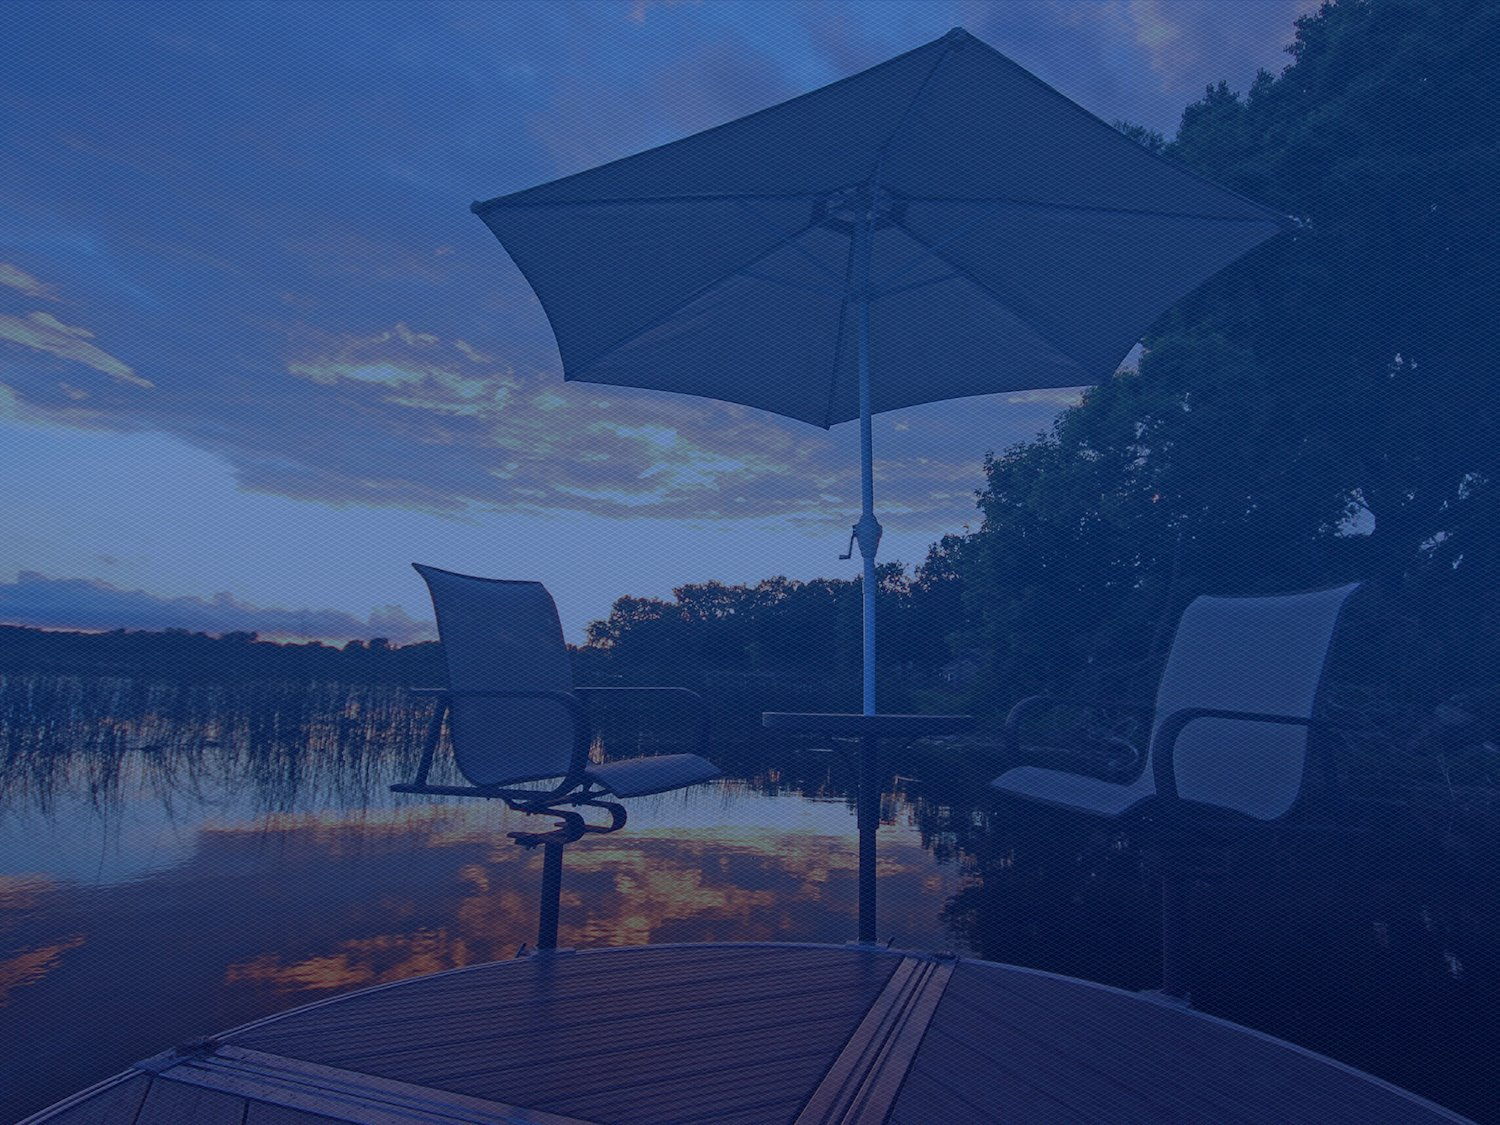 ShoreMaster - Premium Docks, Boat Lifts and Waterfront Systems